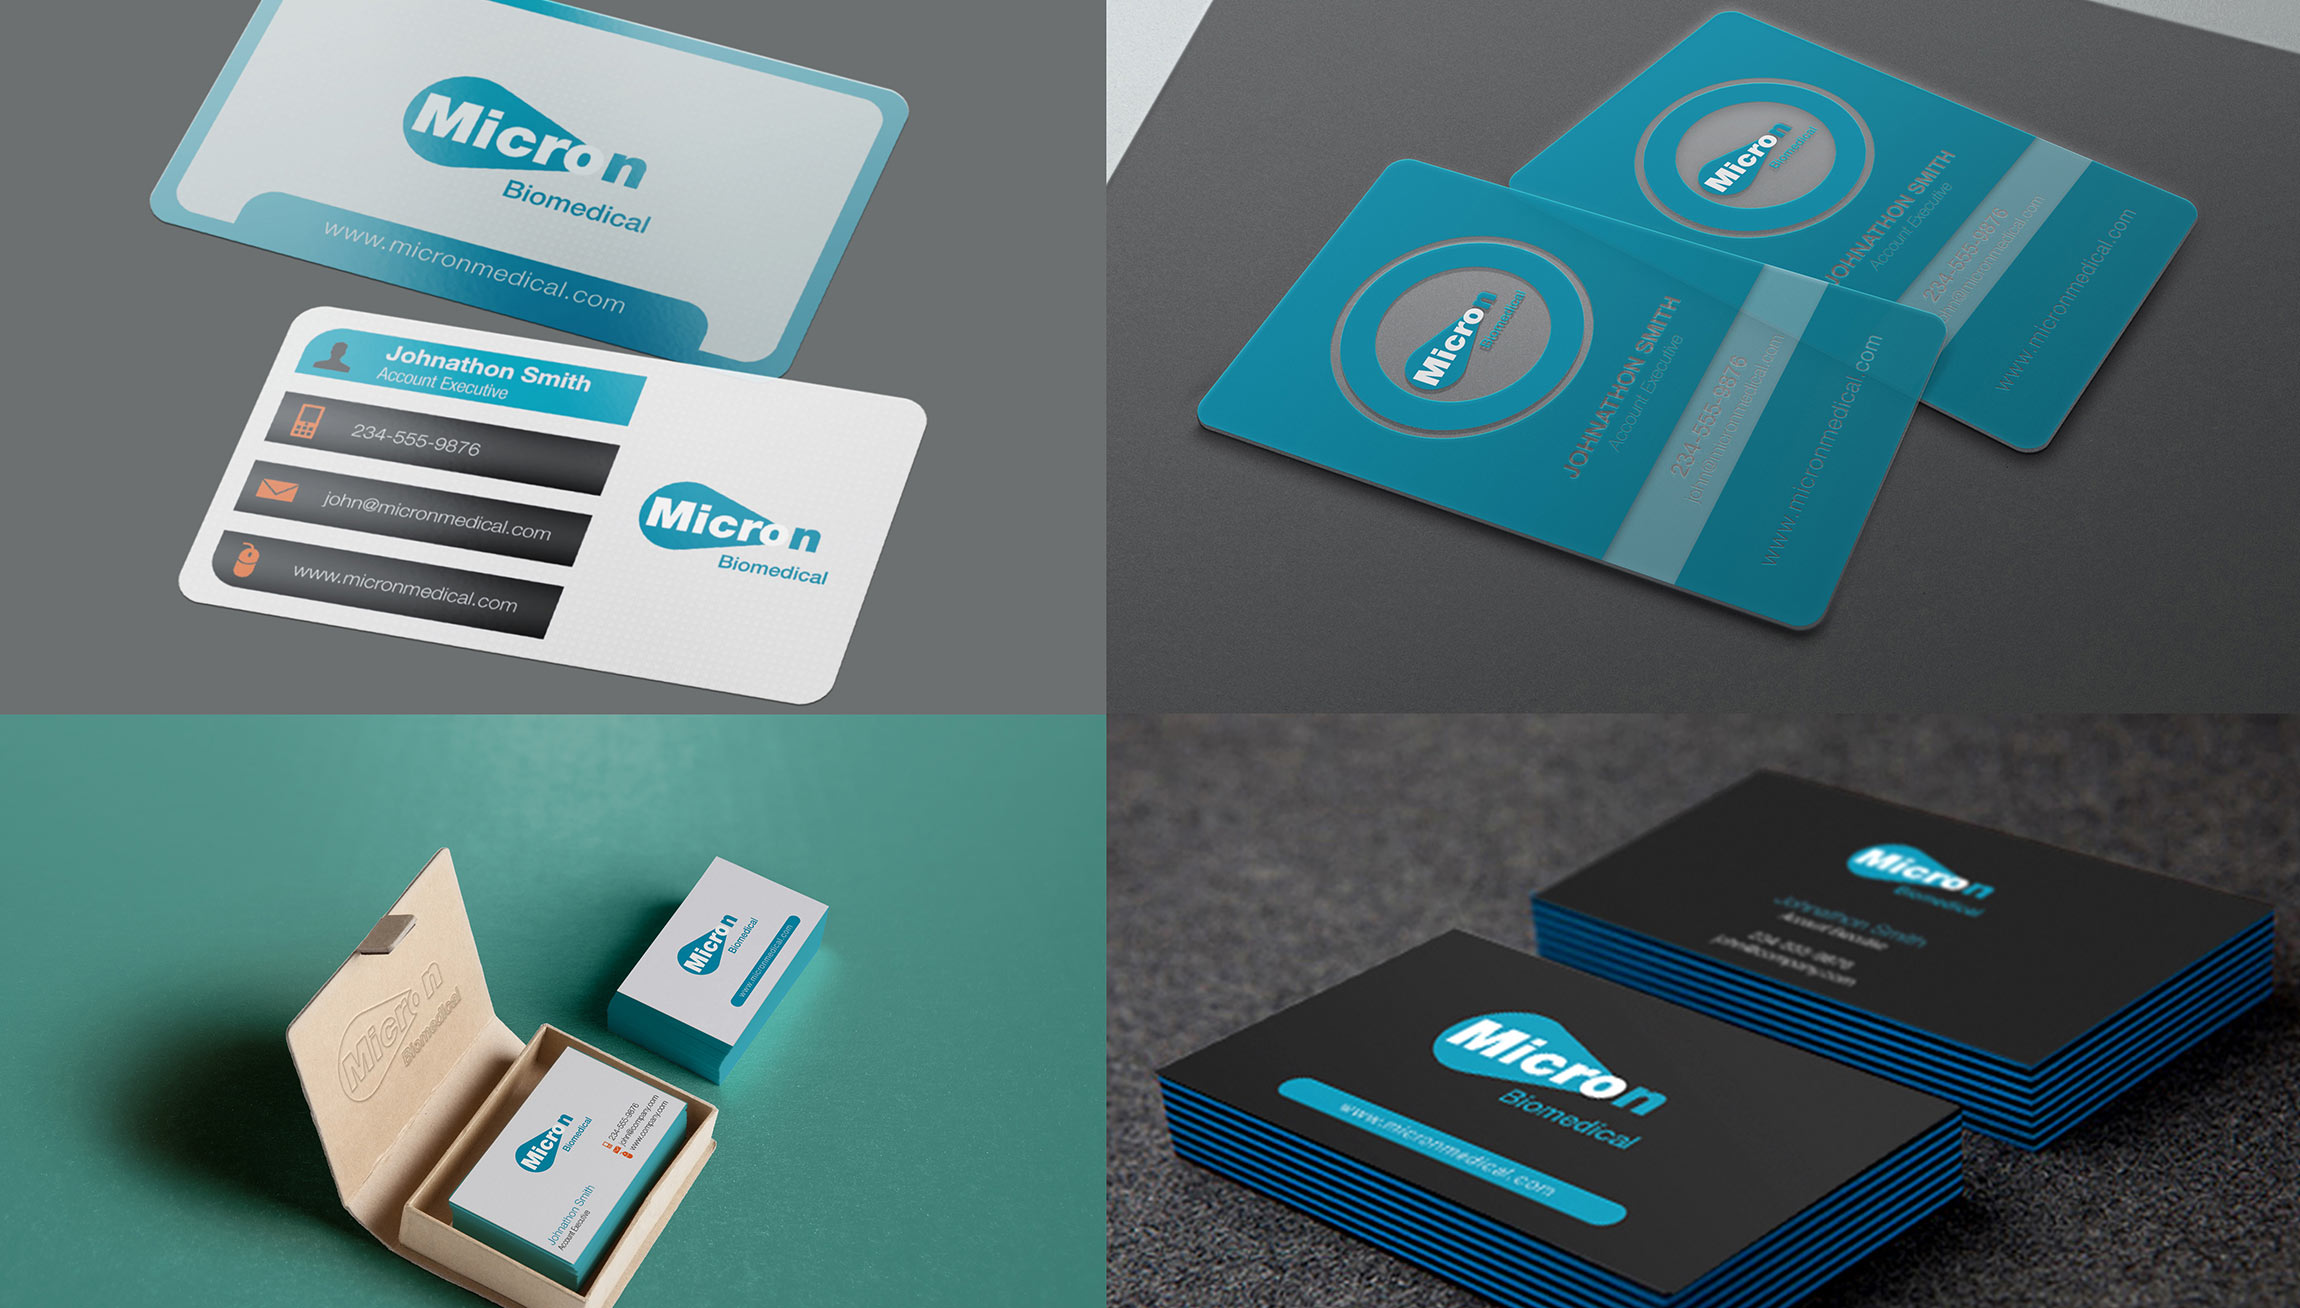 Printing and Design - Business Card Proofs Mockups for Micron Biomedical of Atlanta, GA